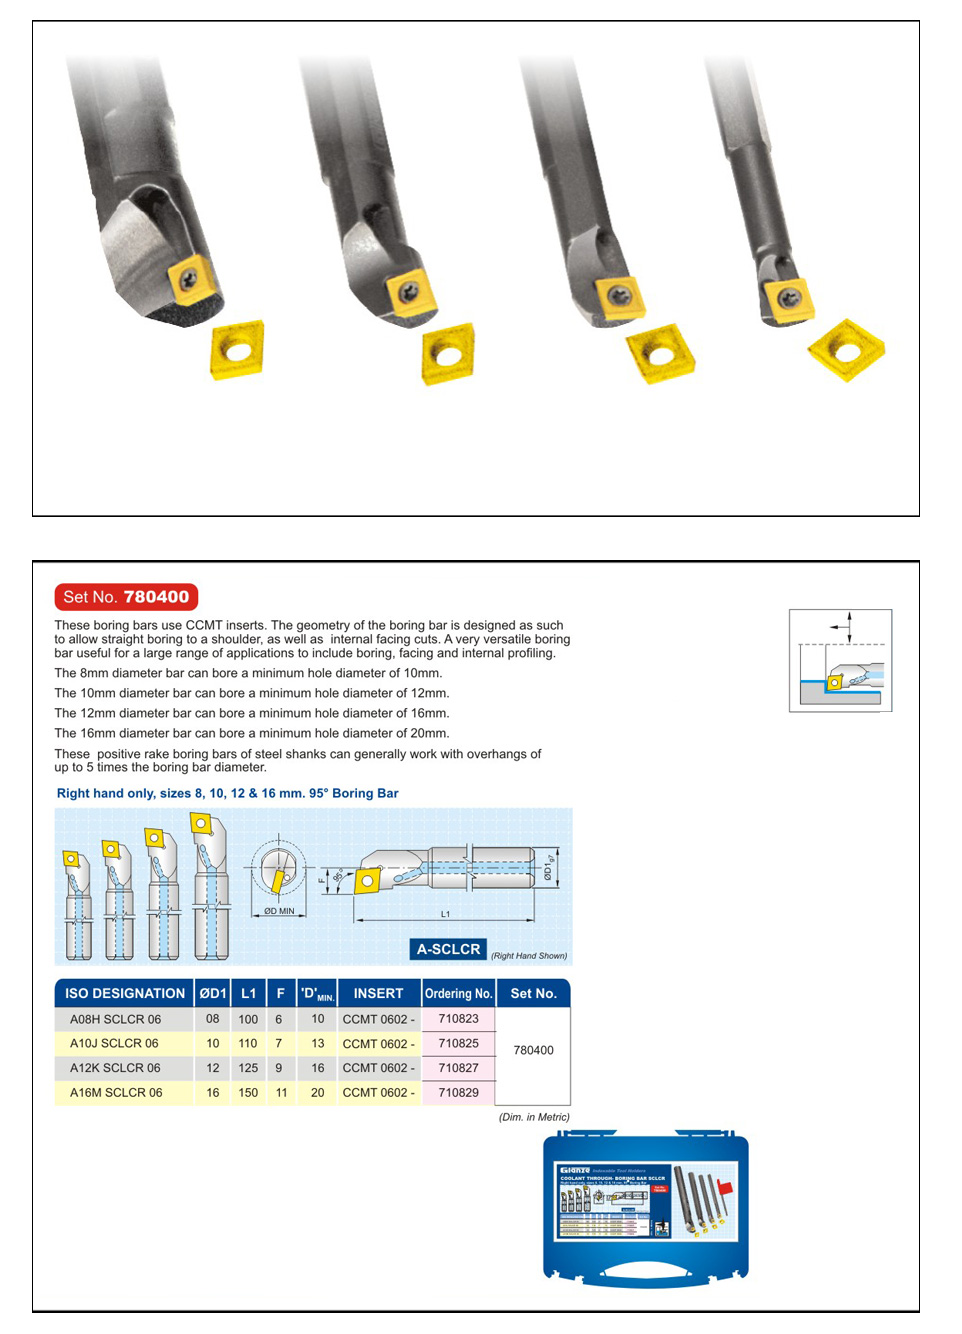 'Glanze - Industrial Tools Manufacturers India' from the web at 'http://www.glanze.com/indexable-tool-holders/../products/milling-cutters/mc-coolant-through-bb-sclcr.jpg'